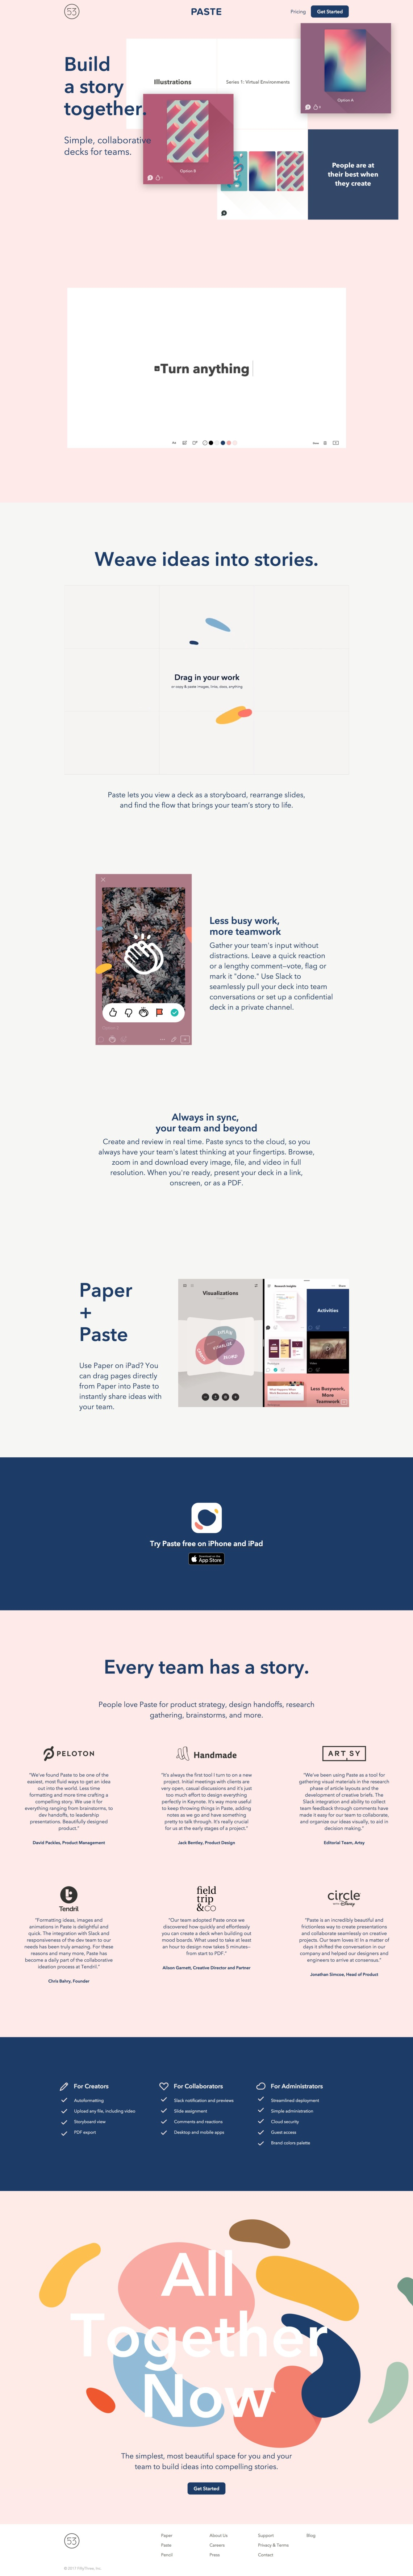 Paste by FiftyThree | Decks for Creative Teams